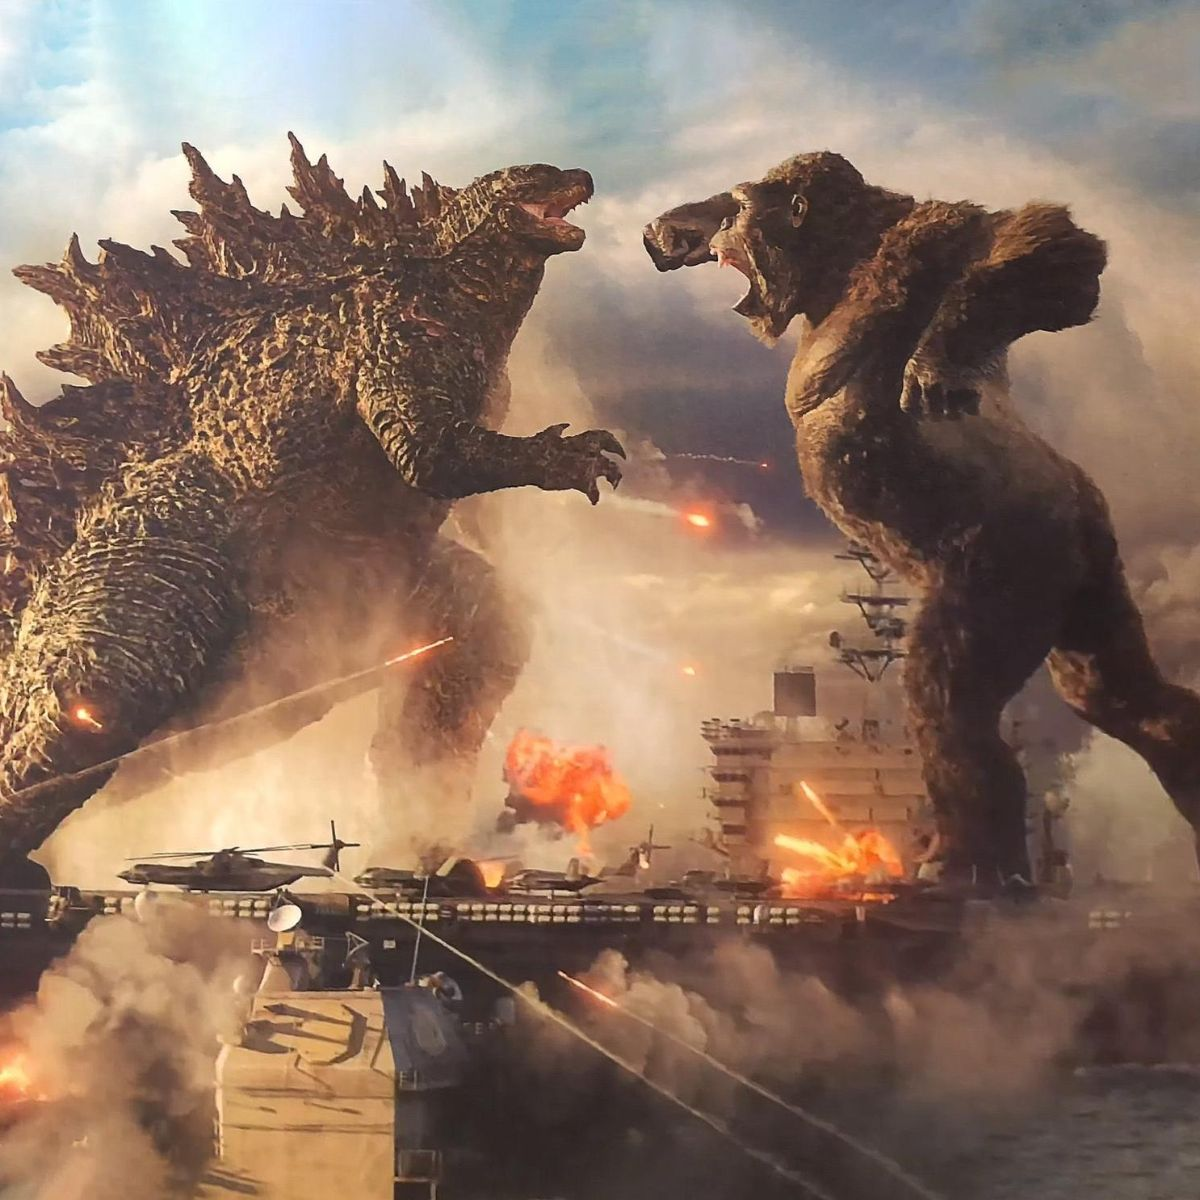 Godzilla Vs Kong Wb Releases First Trailer Two Monsters Lock Horns In An Epic Battle On Worlds In 2021 King Kong Vs Godzilla King Kong Godzilla Vs